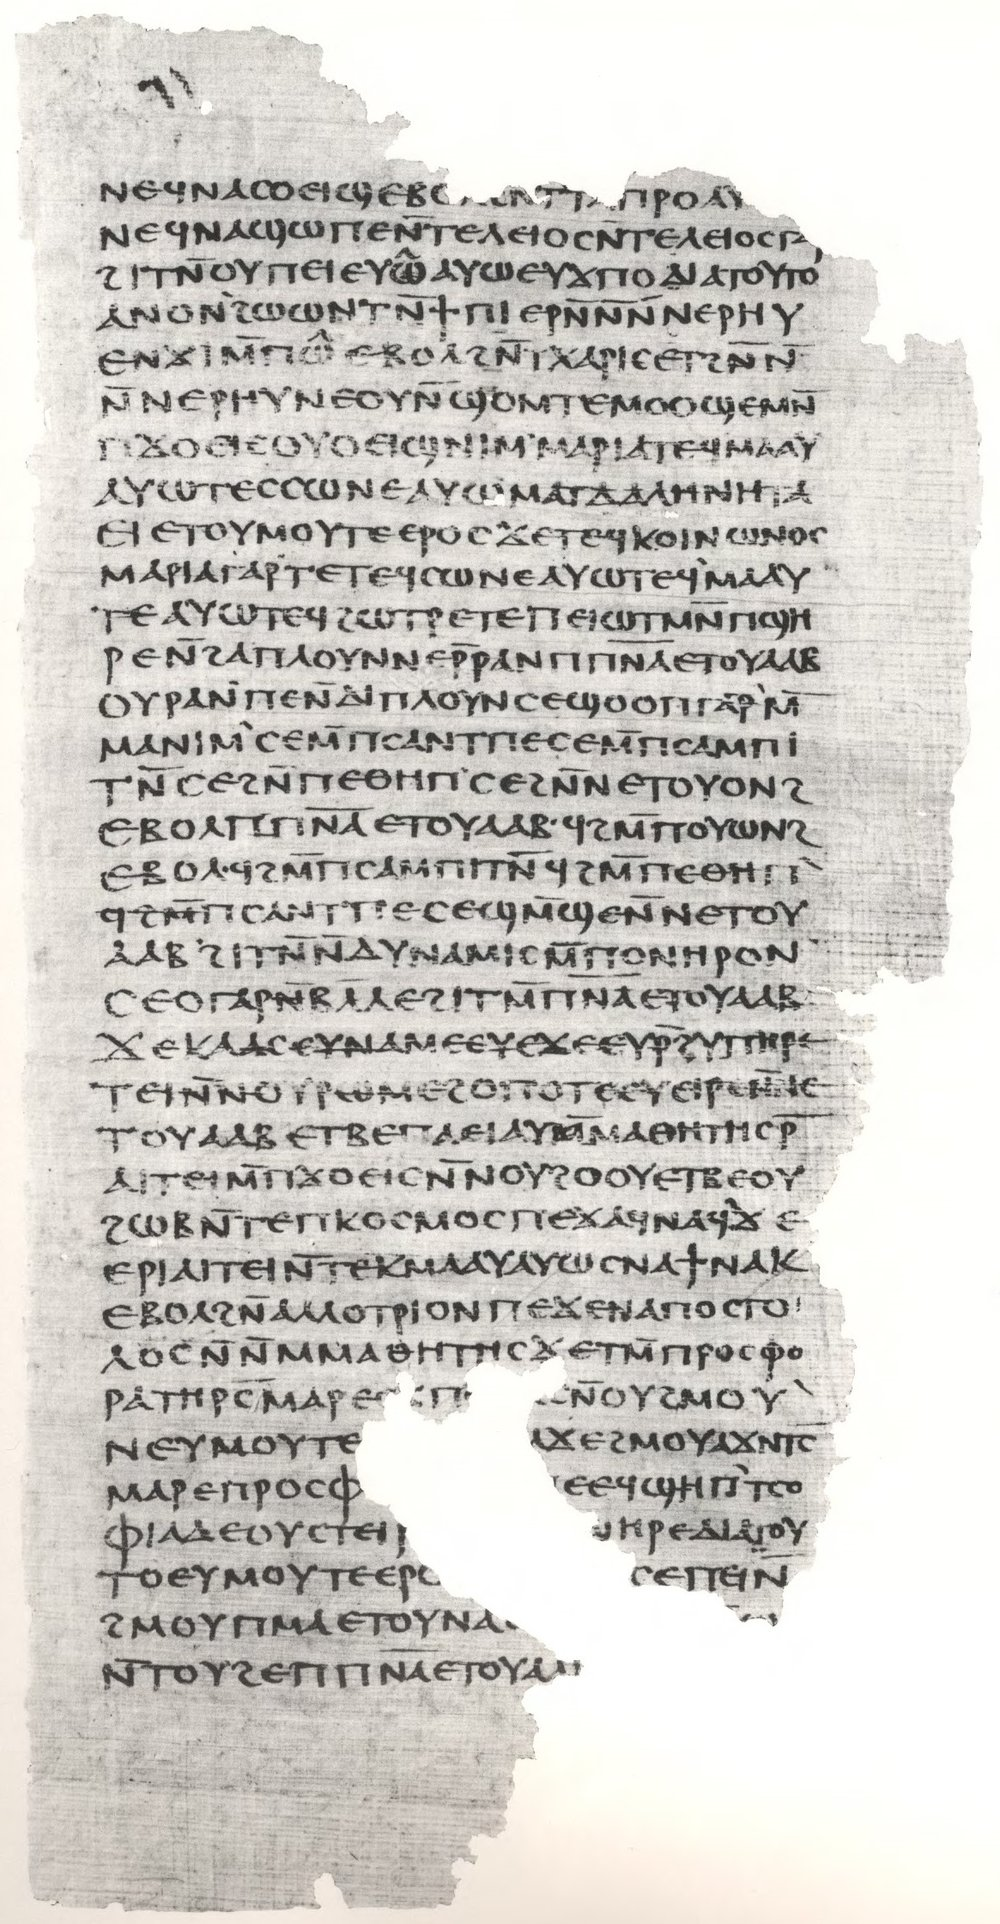 Gospel_of_Philip_facsimile_Page_59.jpg